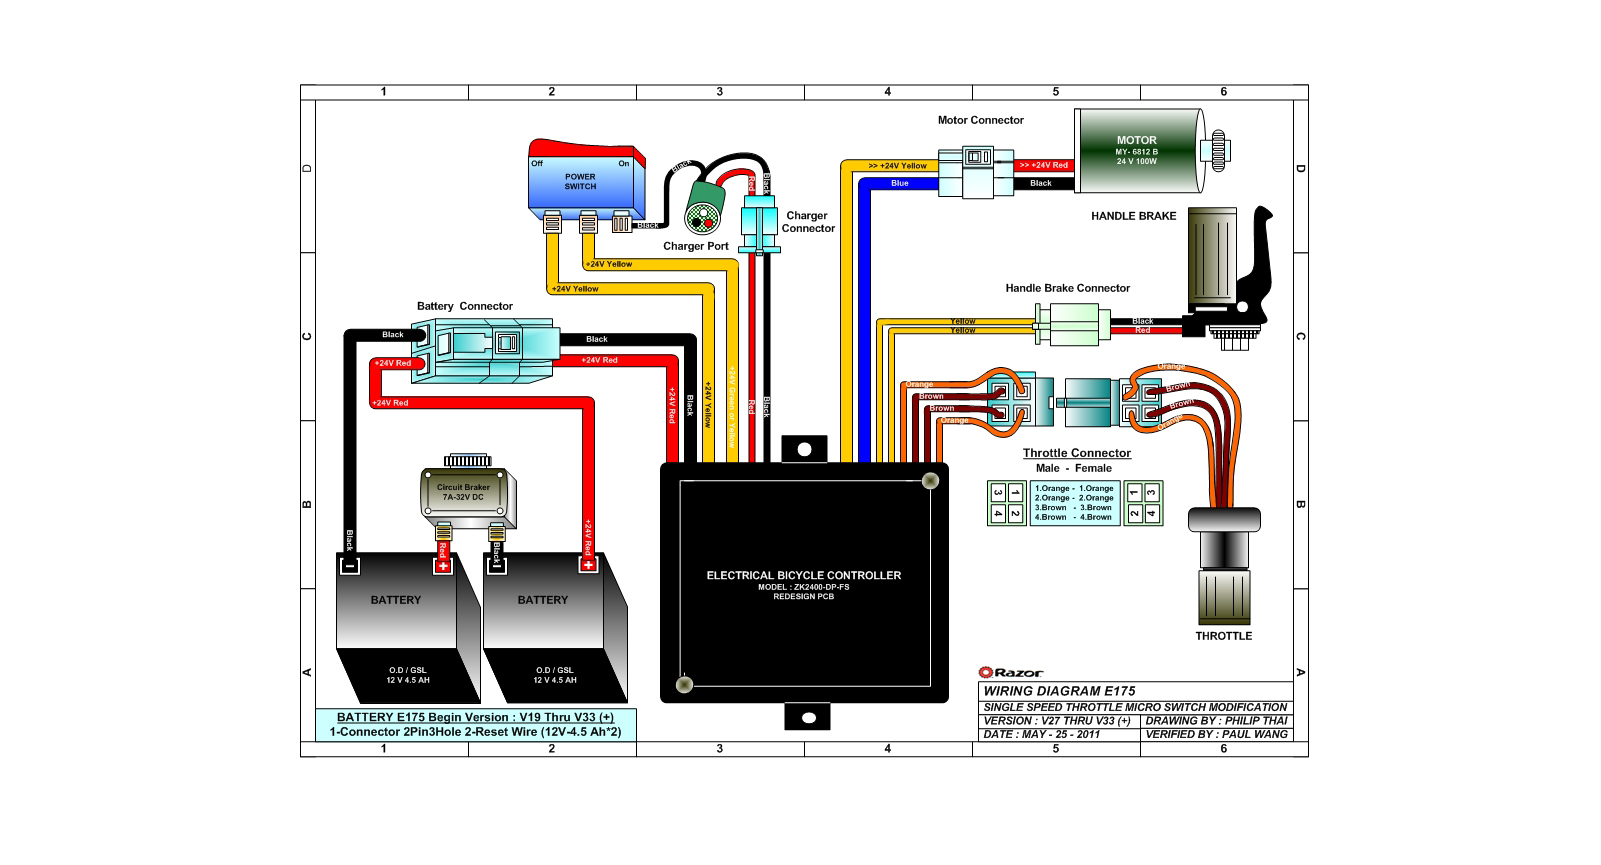 hight resolution of  e175 versions 27 wiring diagram